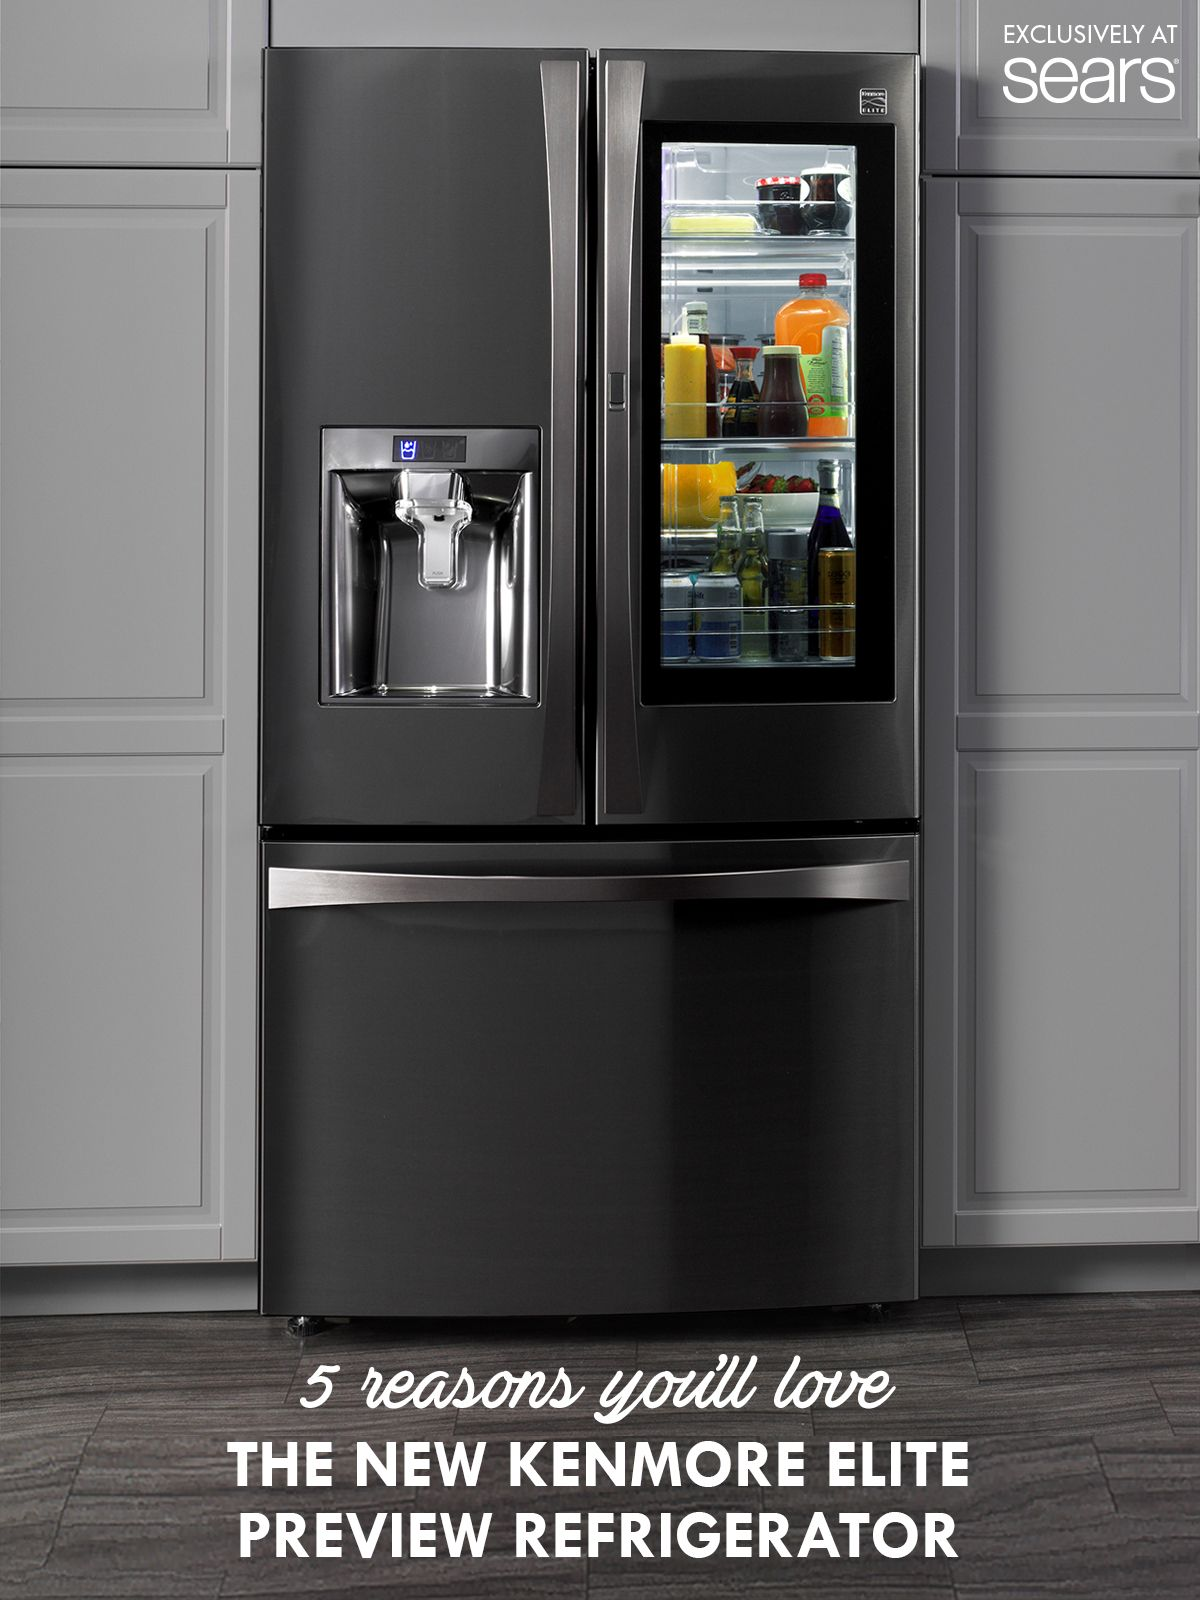 5 Reasons You Ll Love The New Kenmore Elite Preview Refrigerator